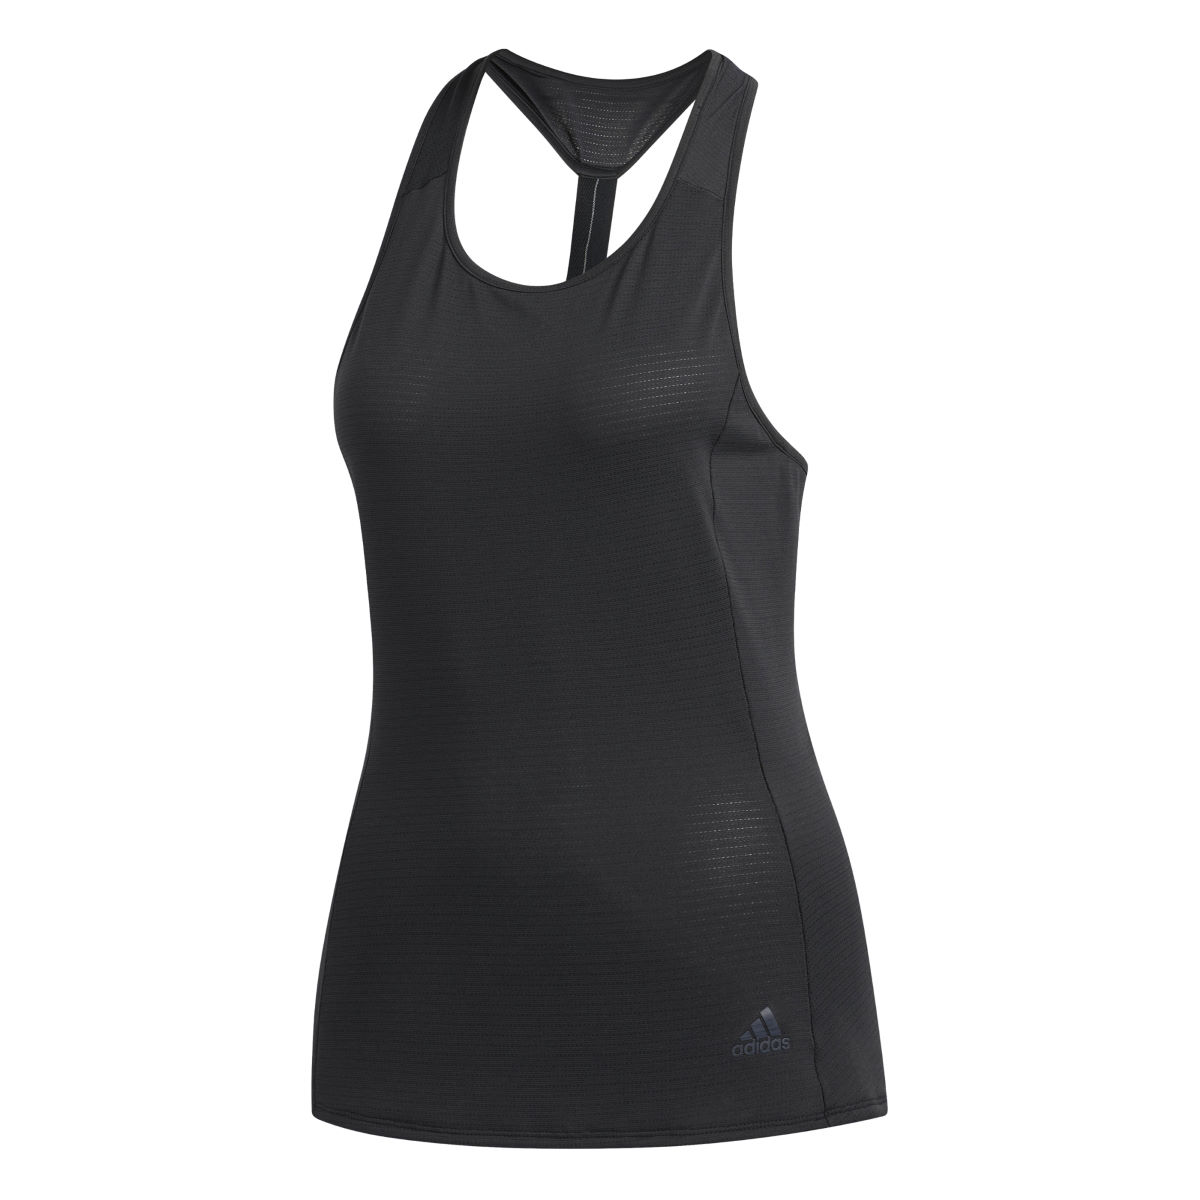 Débardeur Femme adidas Supernova - Medium BLACK